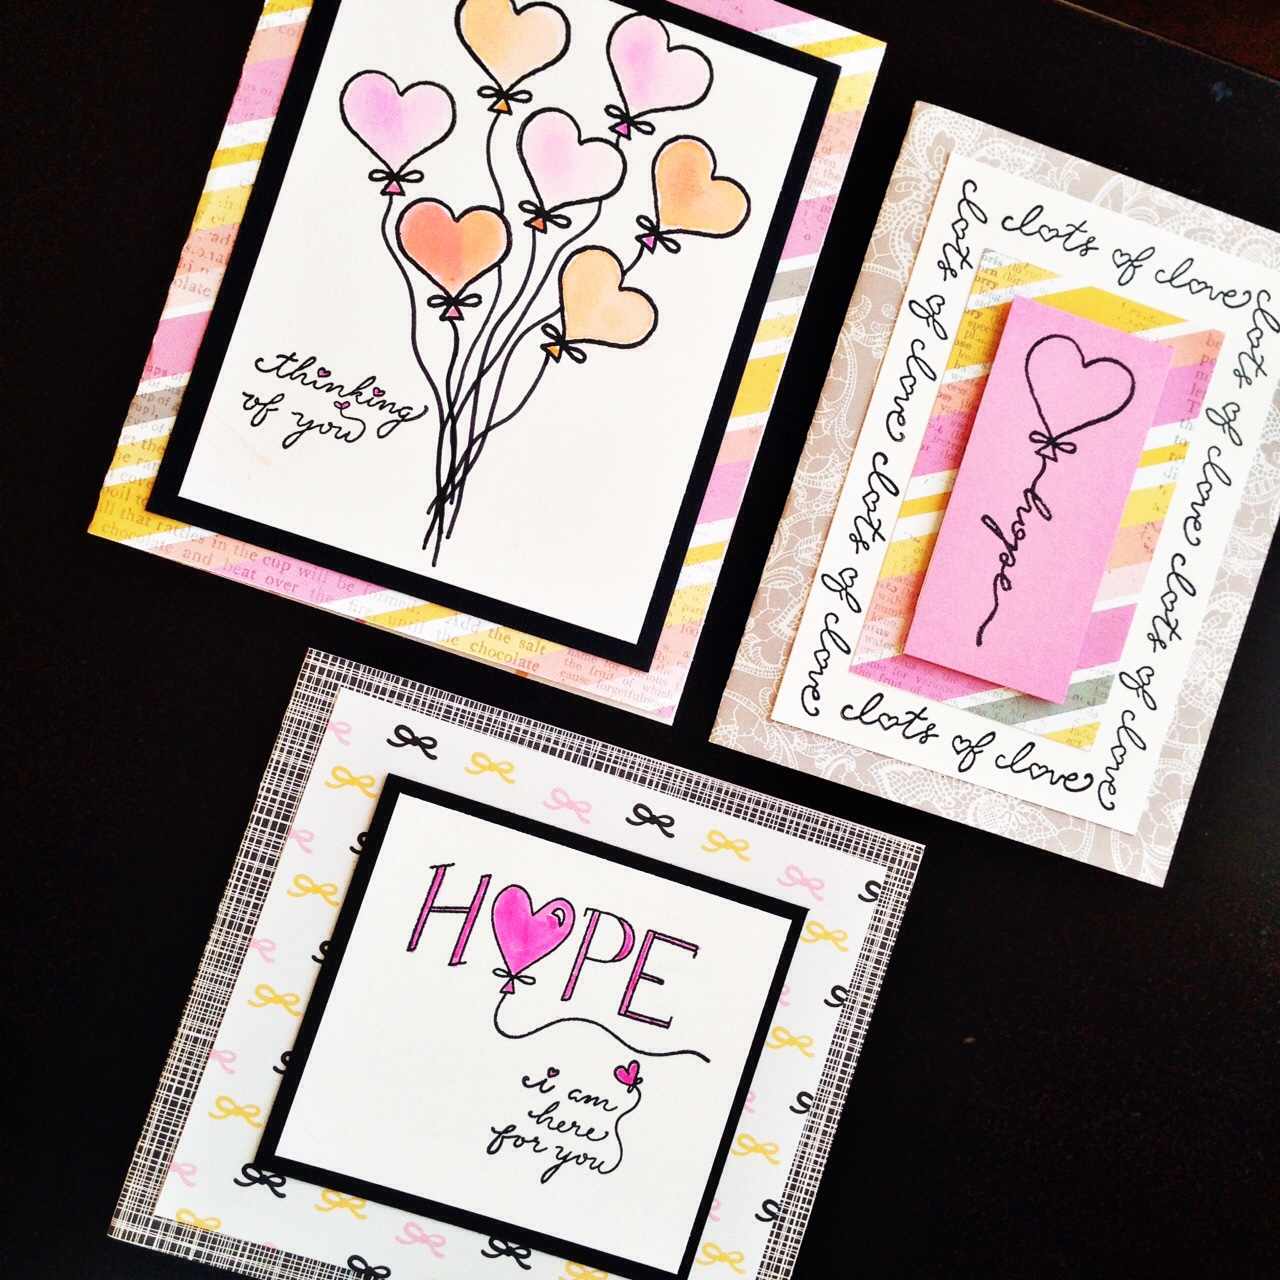 @kellycreates #ajillianvancedesign #stamps #stamping #hope #kellyshope #watercolour #card